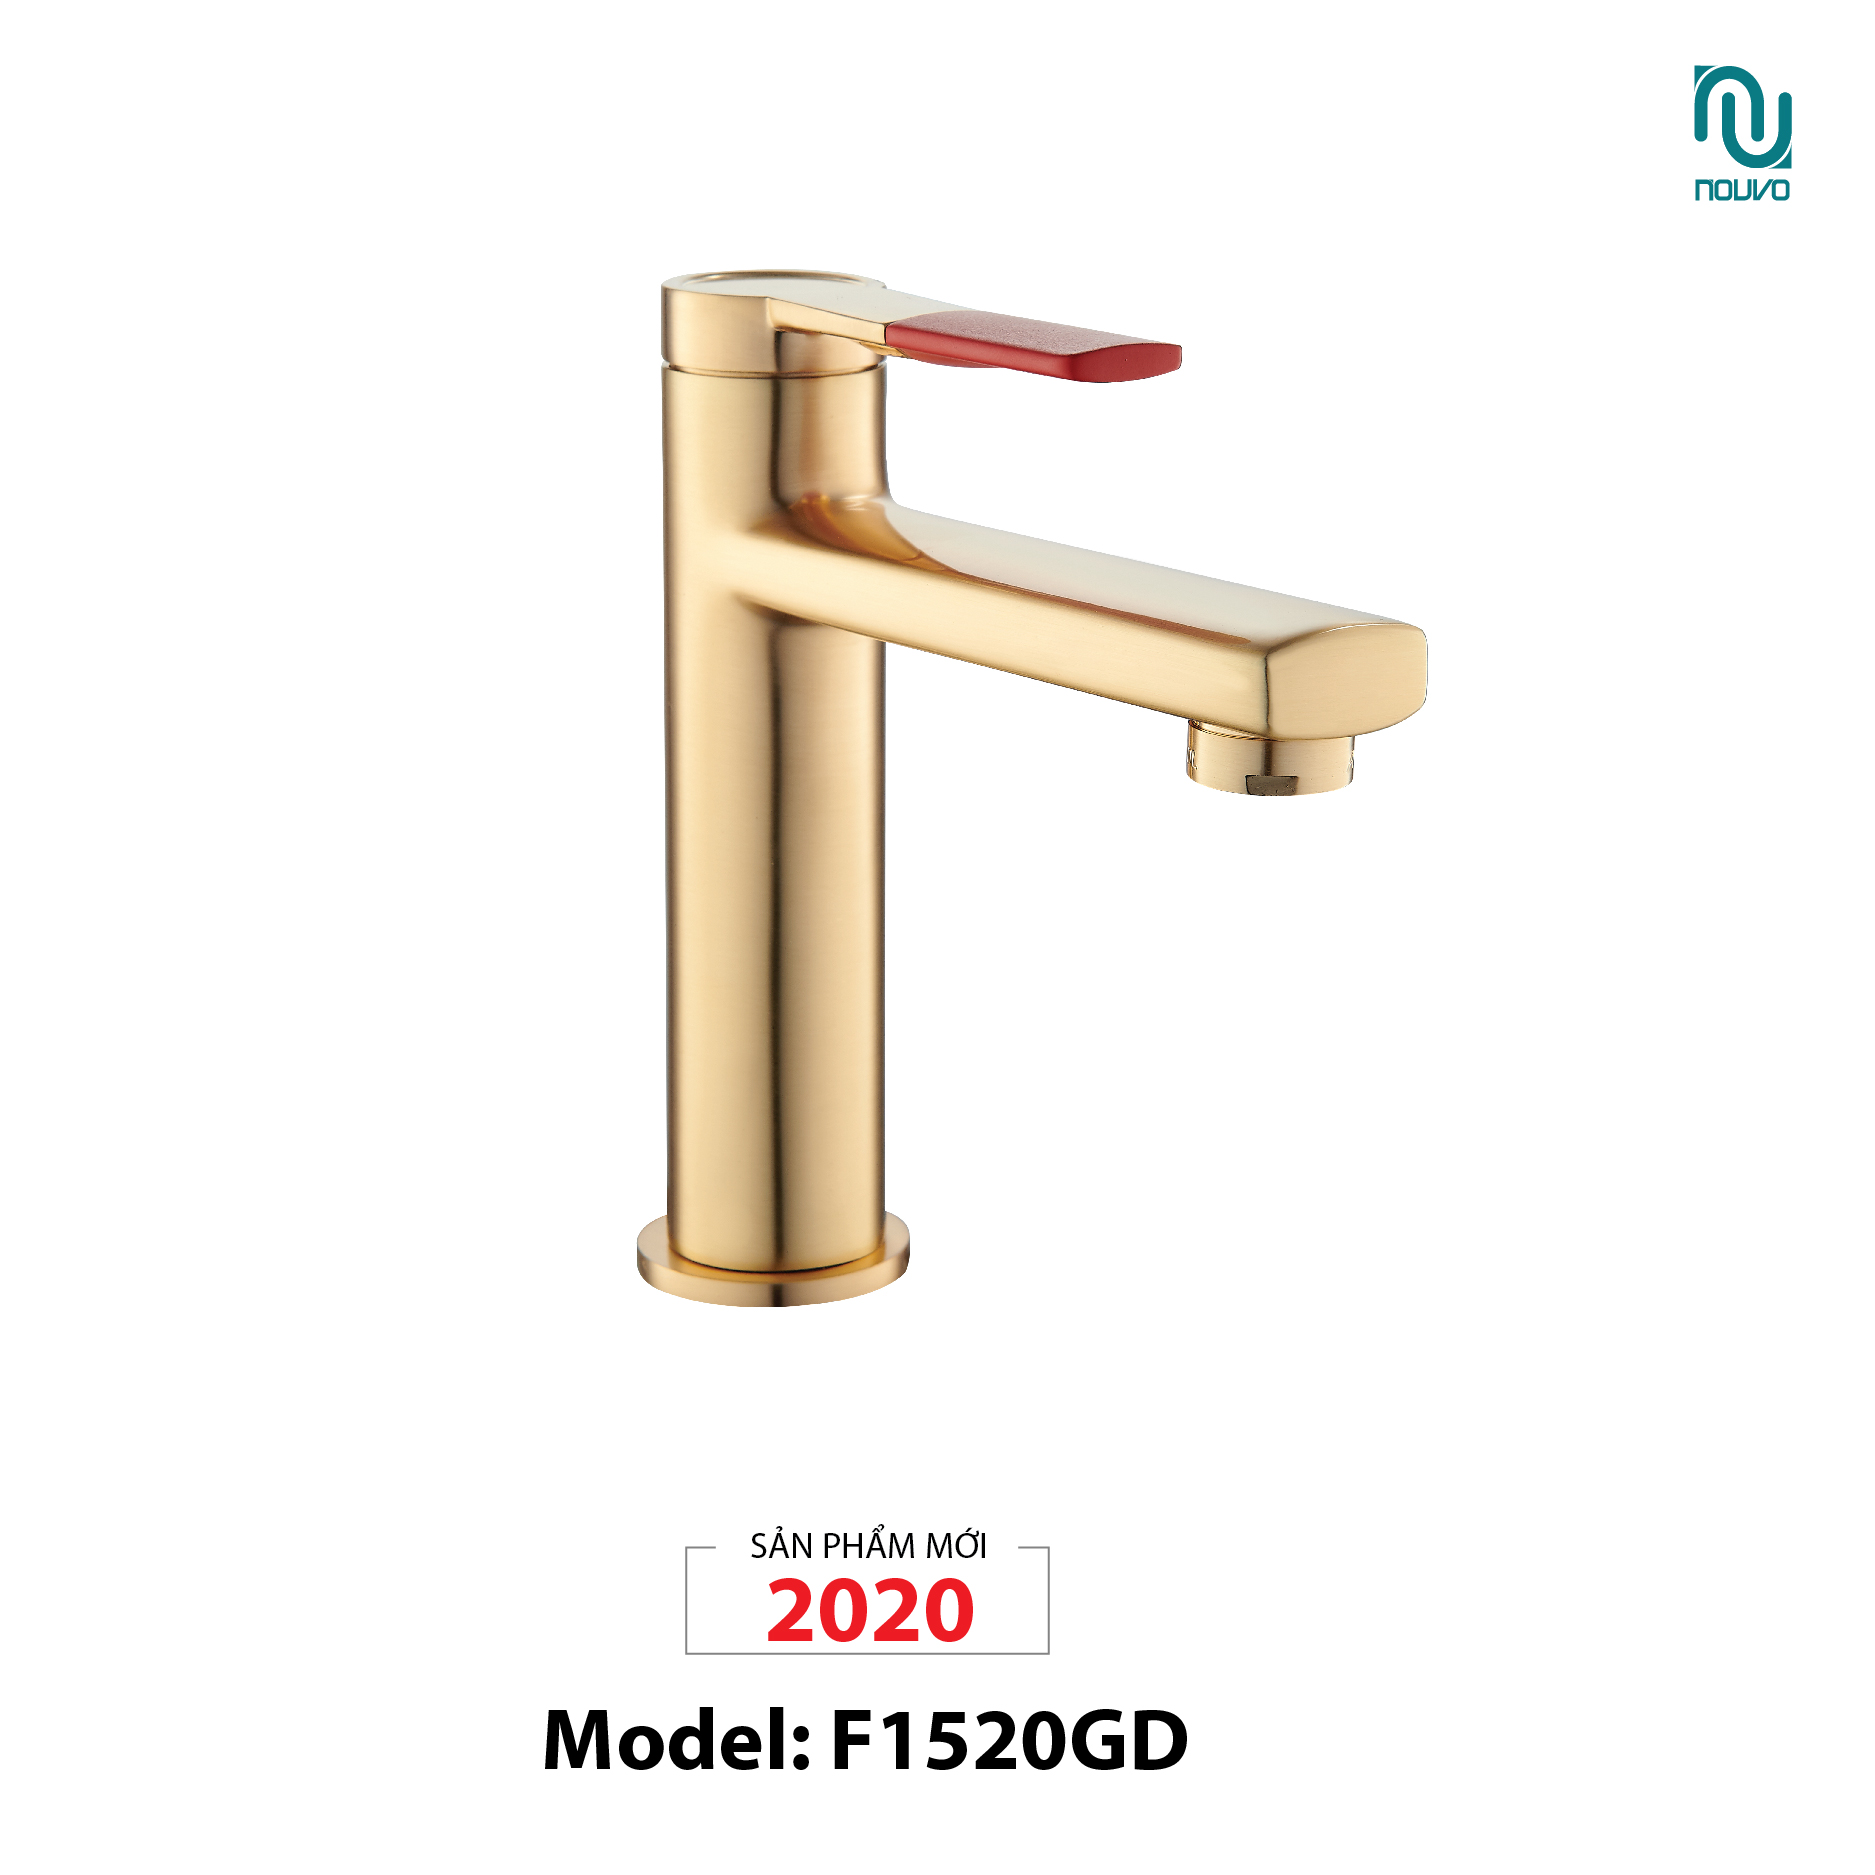 VÒI LAVABO NOUVO MODEL F1520GD (VÒI LAVABO MODEL F1520GD)